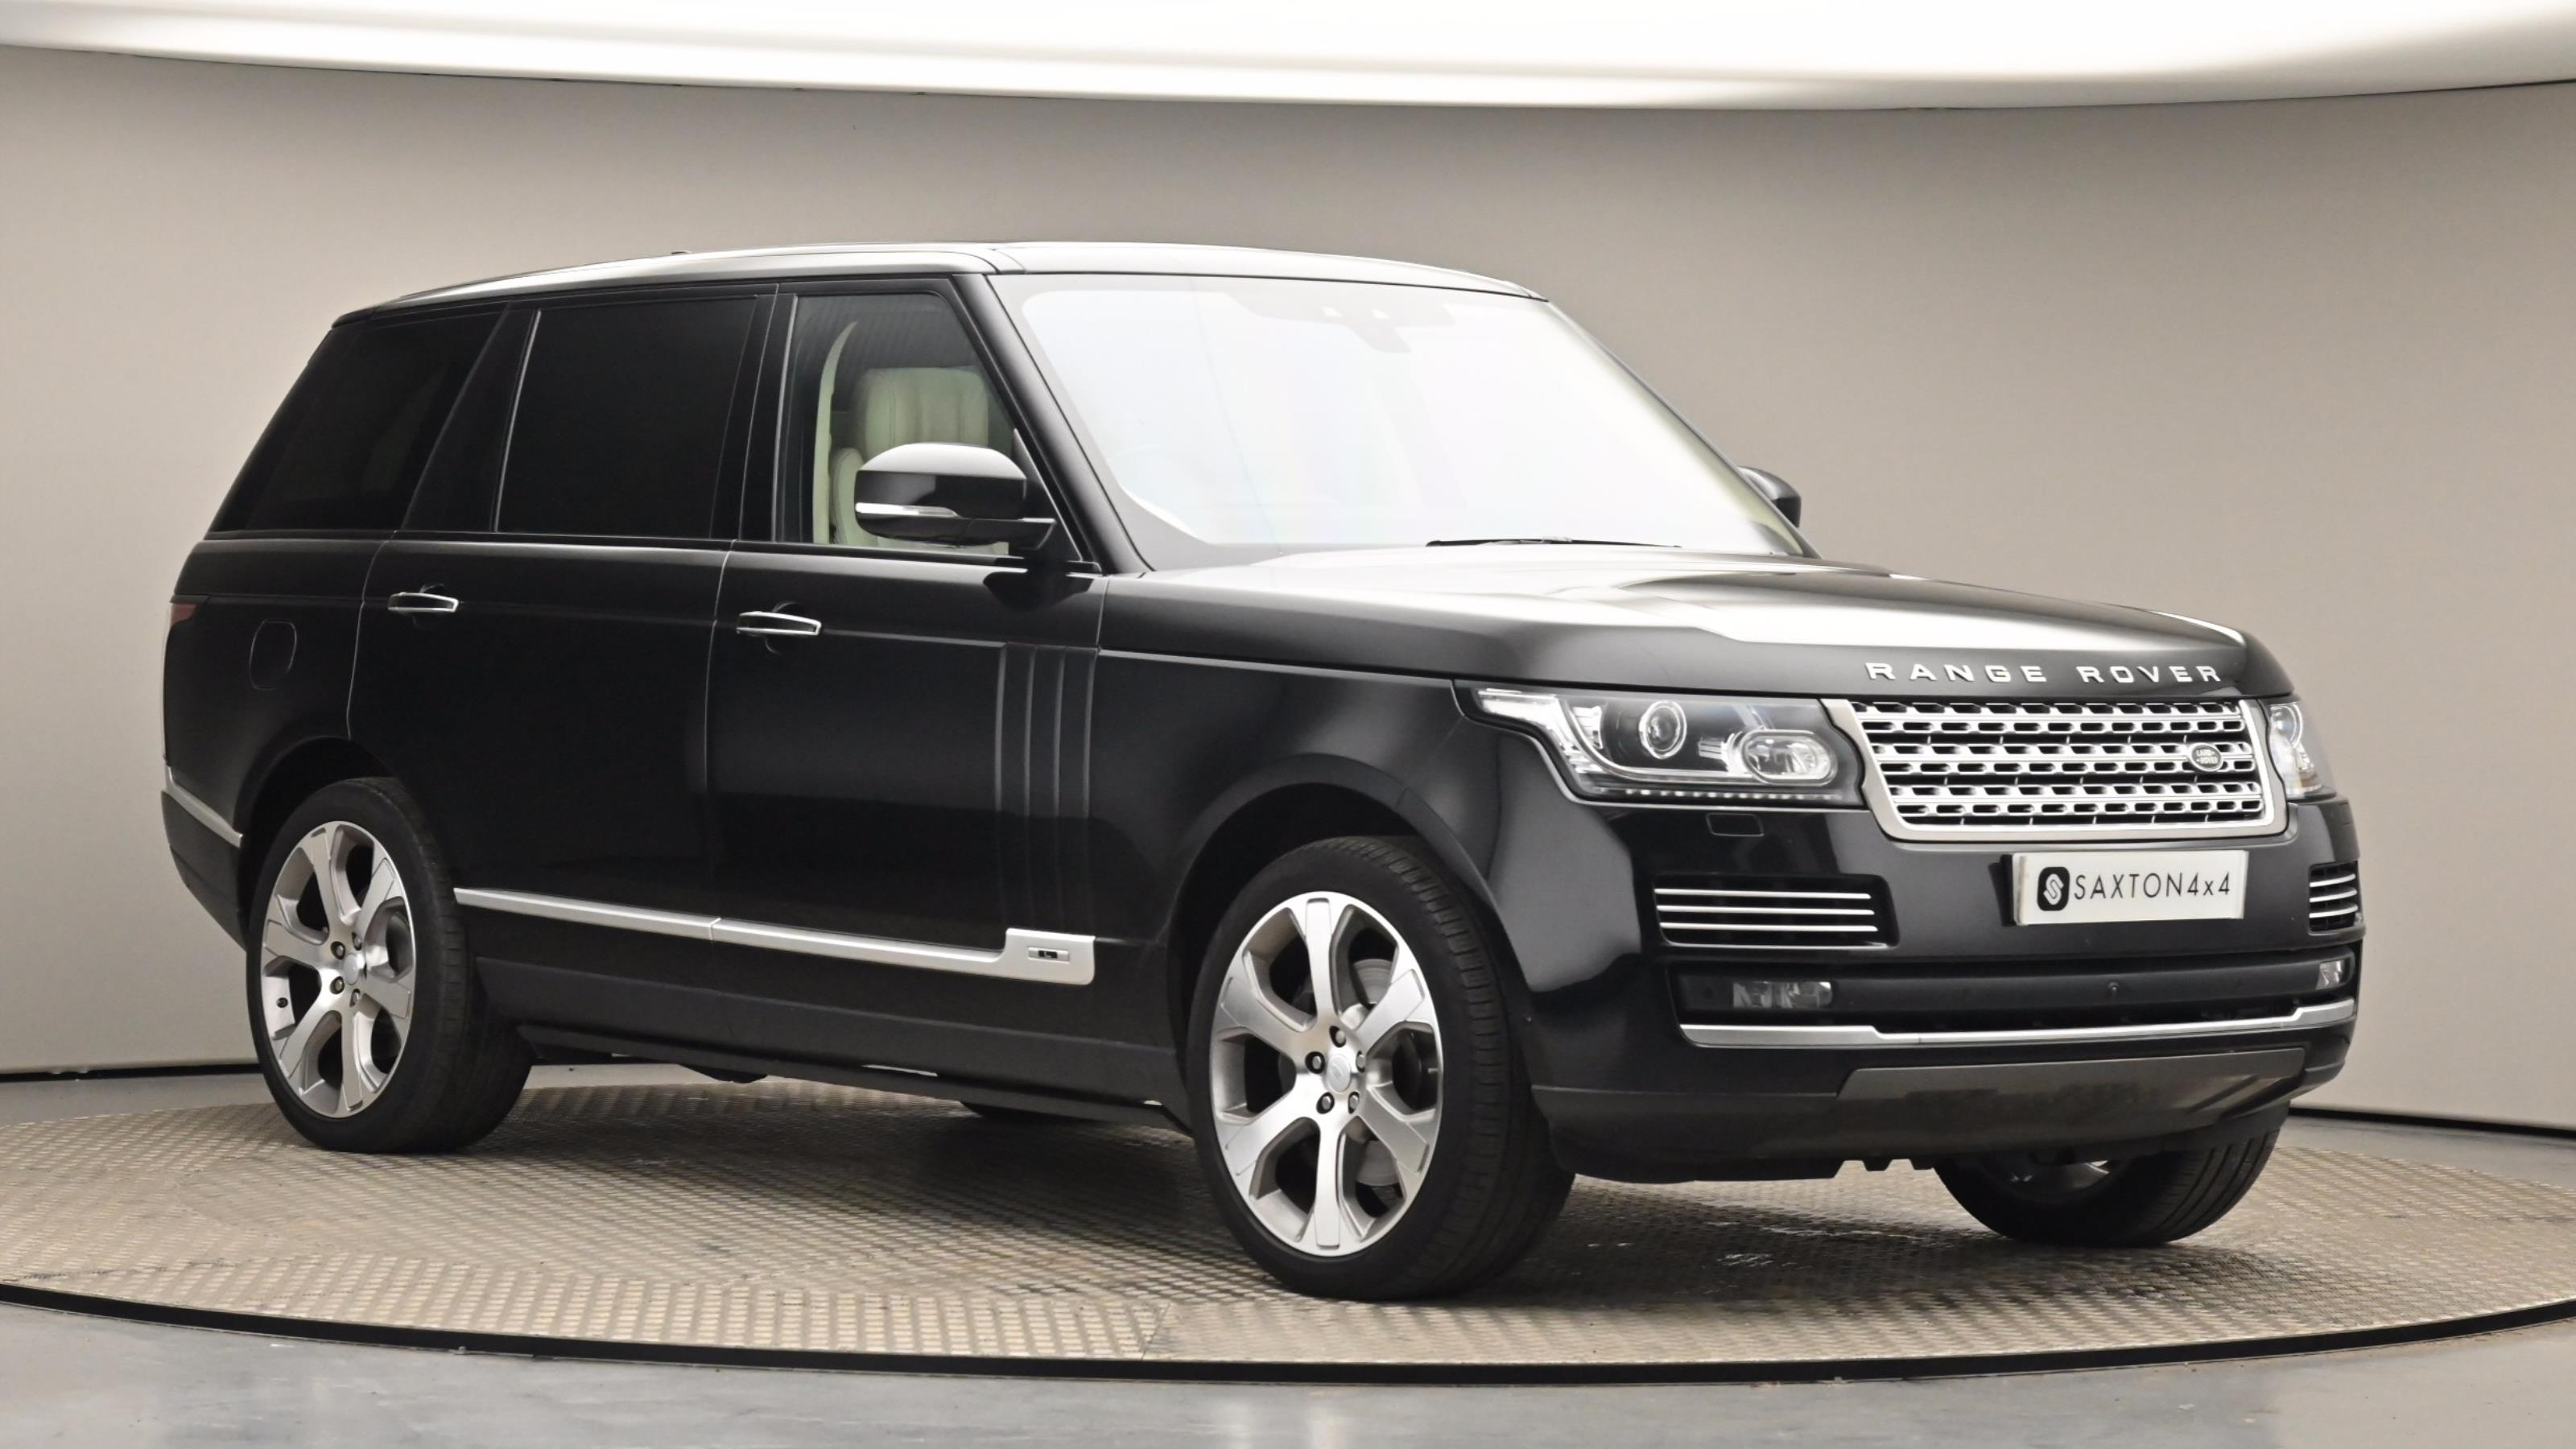 Used 2017 Land Rover RANGE ROVER 4.4 SDV8 Autobiography LWB 4dr Auto at Saxton4x4